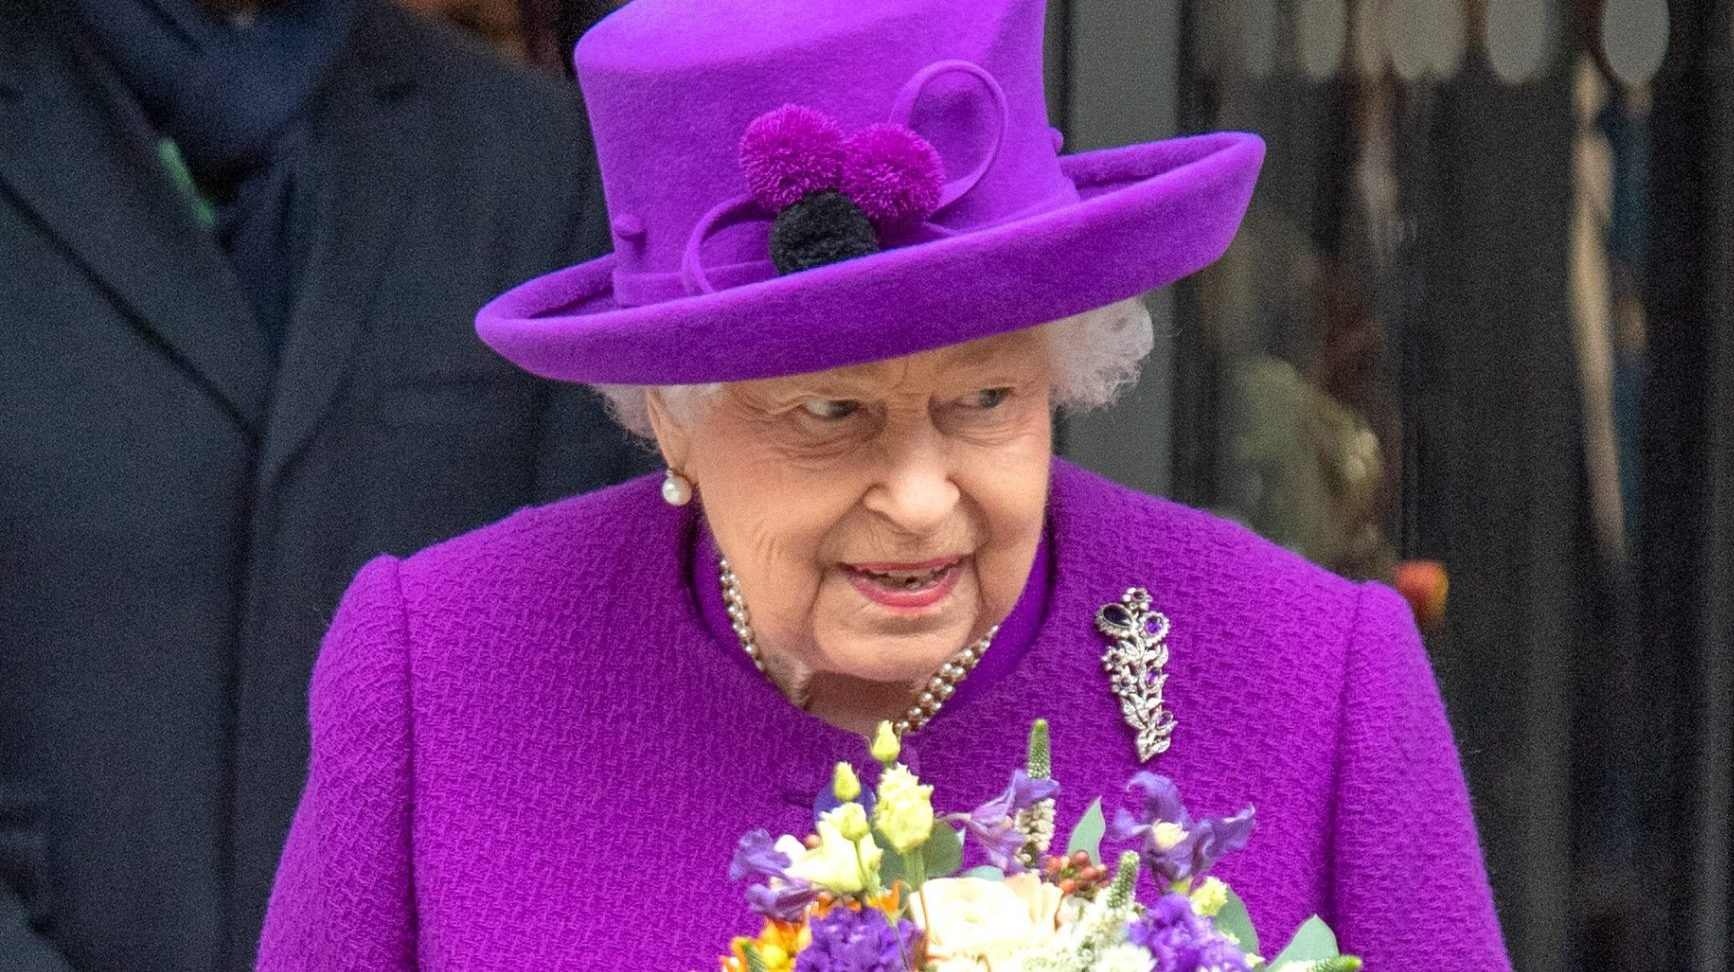 Royal fans praise the Queen for her 'beautiful' tribute to Prince Harry